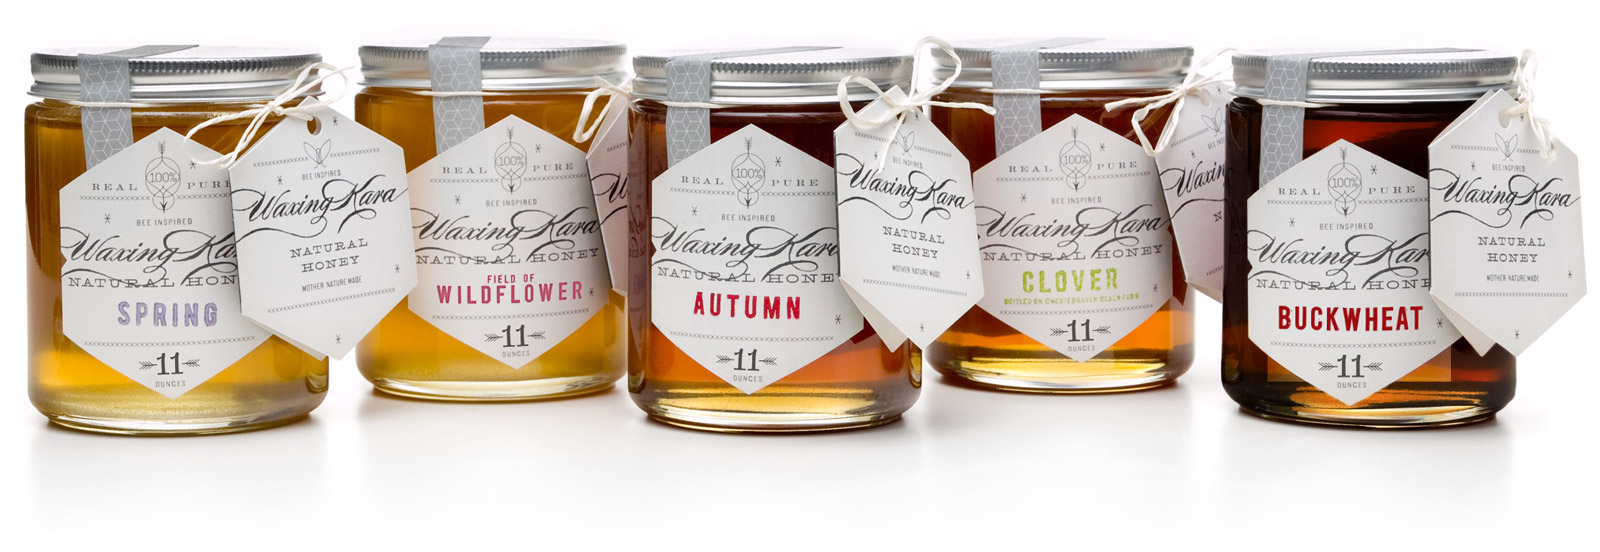 Jars of Spring, Wildflower, Autumn, Clover, and Buckwheat Waxing Kara Eastern Shore Kosher Honey lined up against a white editorial background